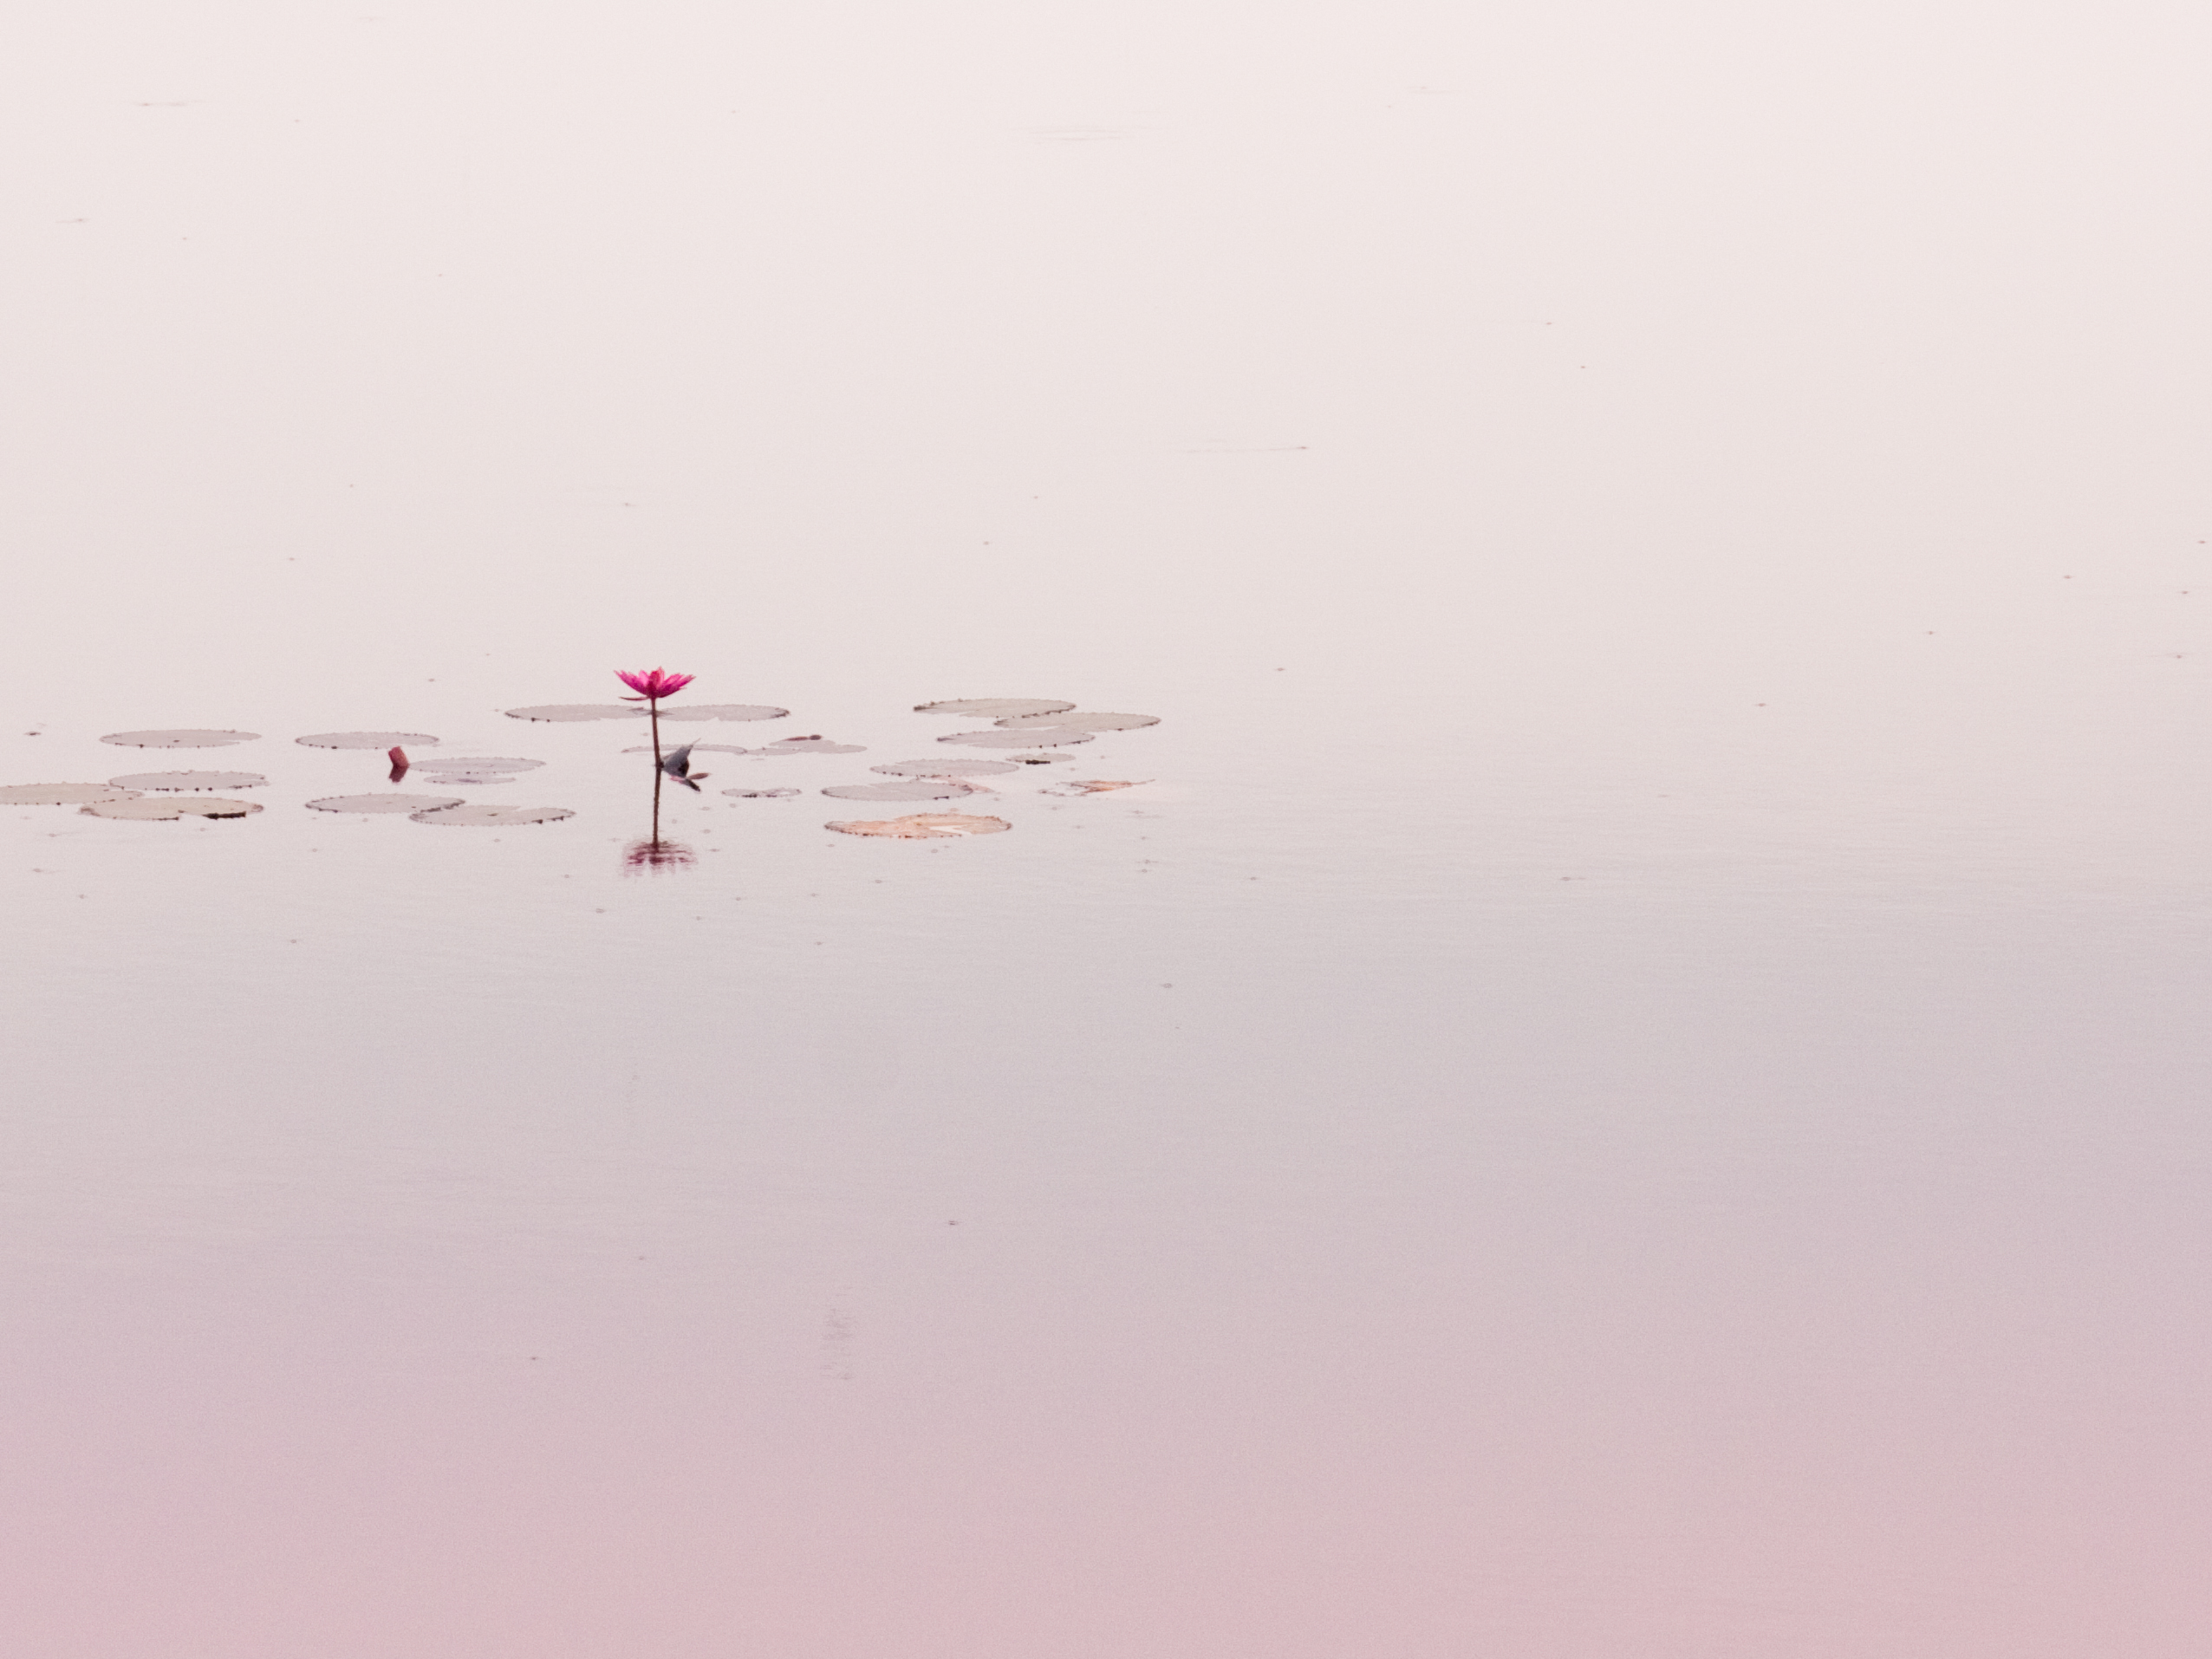 Lone Lotus Flower in Pond